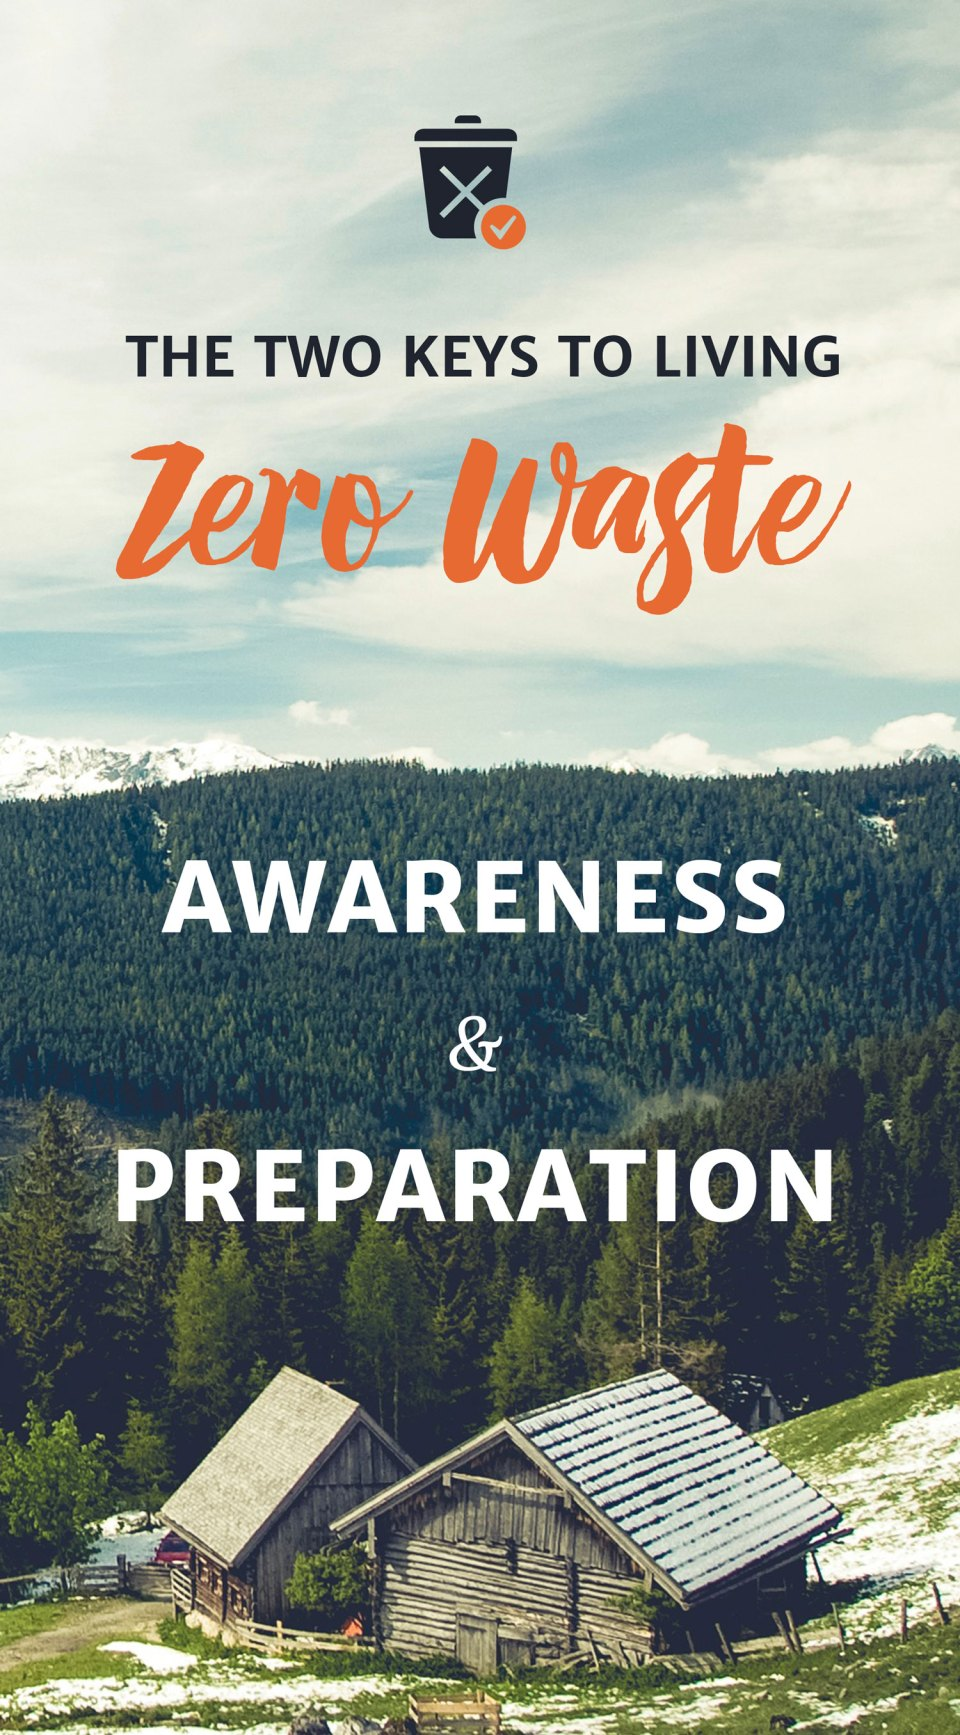 The Key for Living Zero Waste